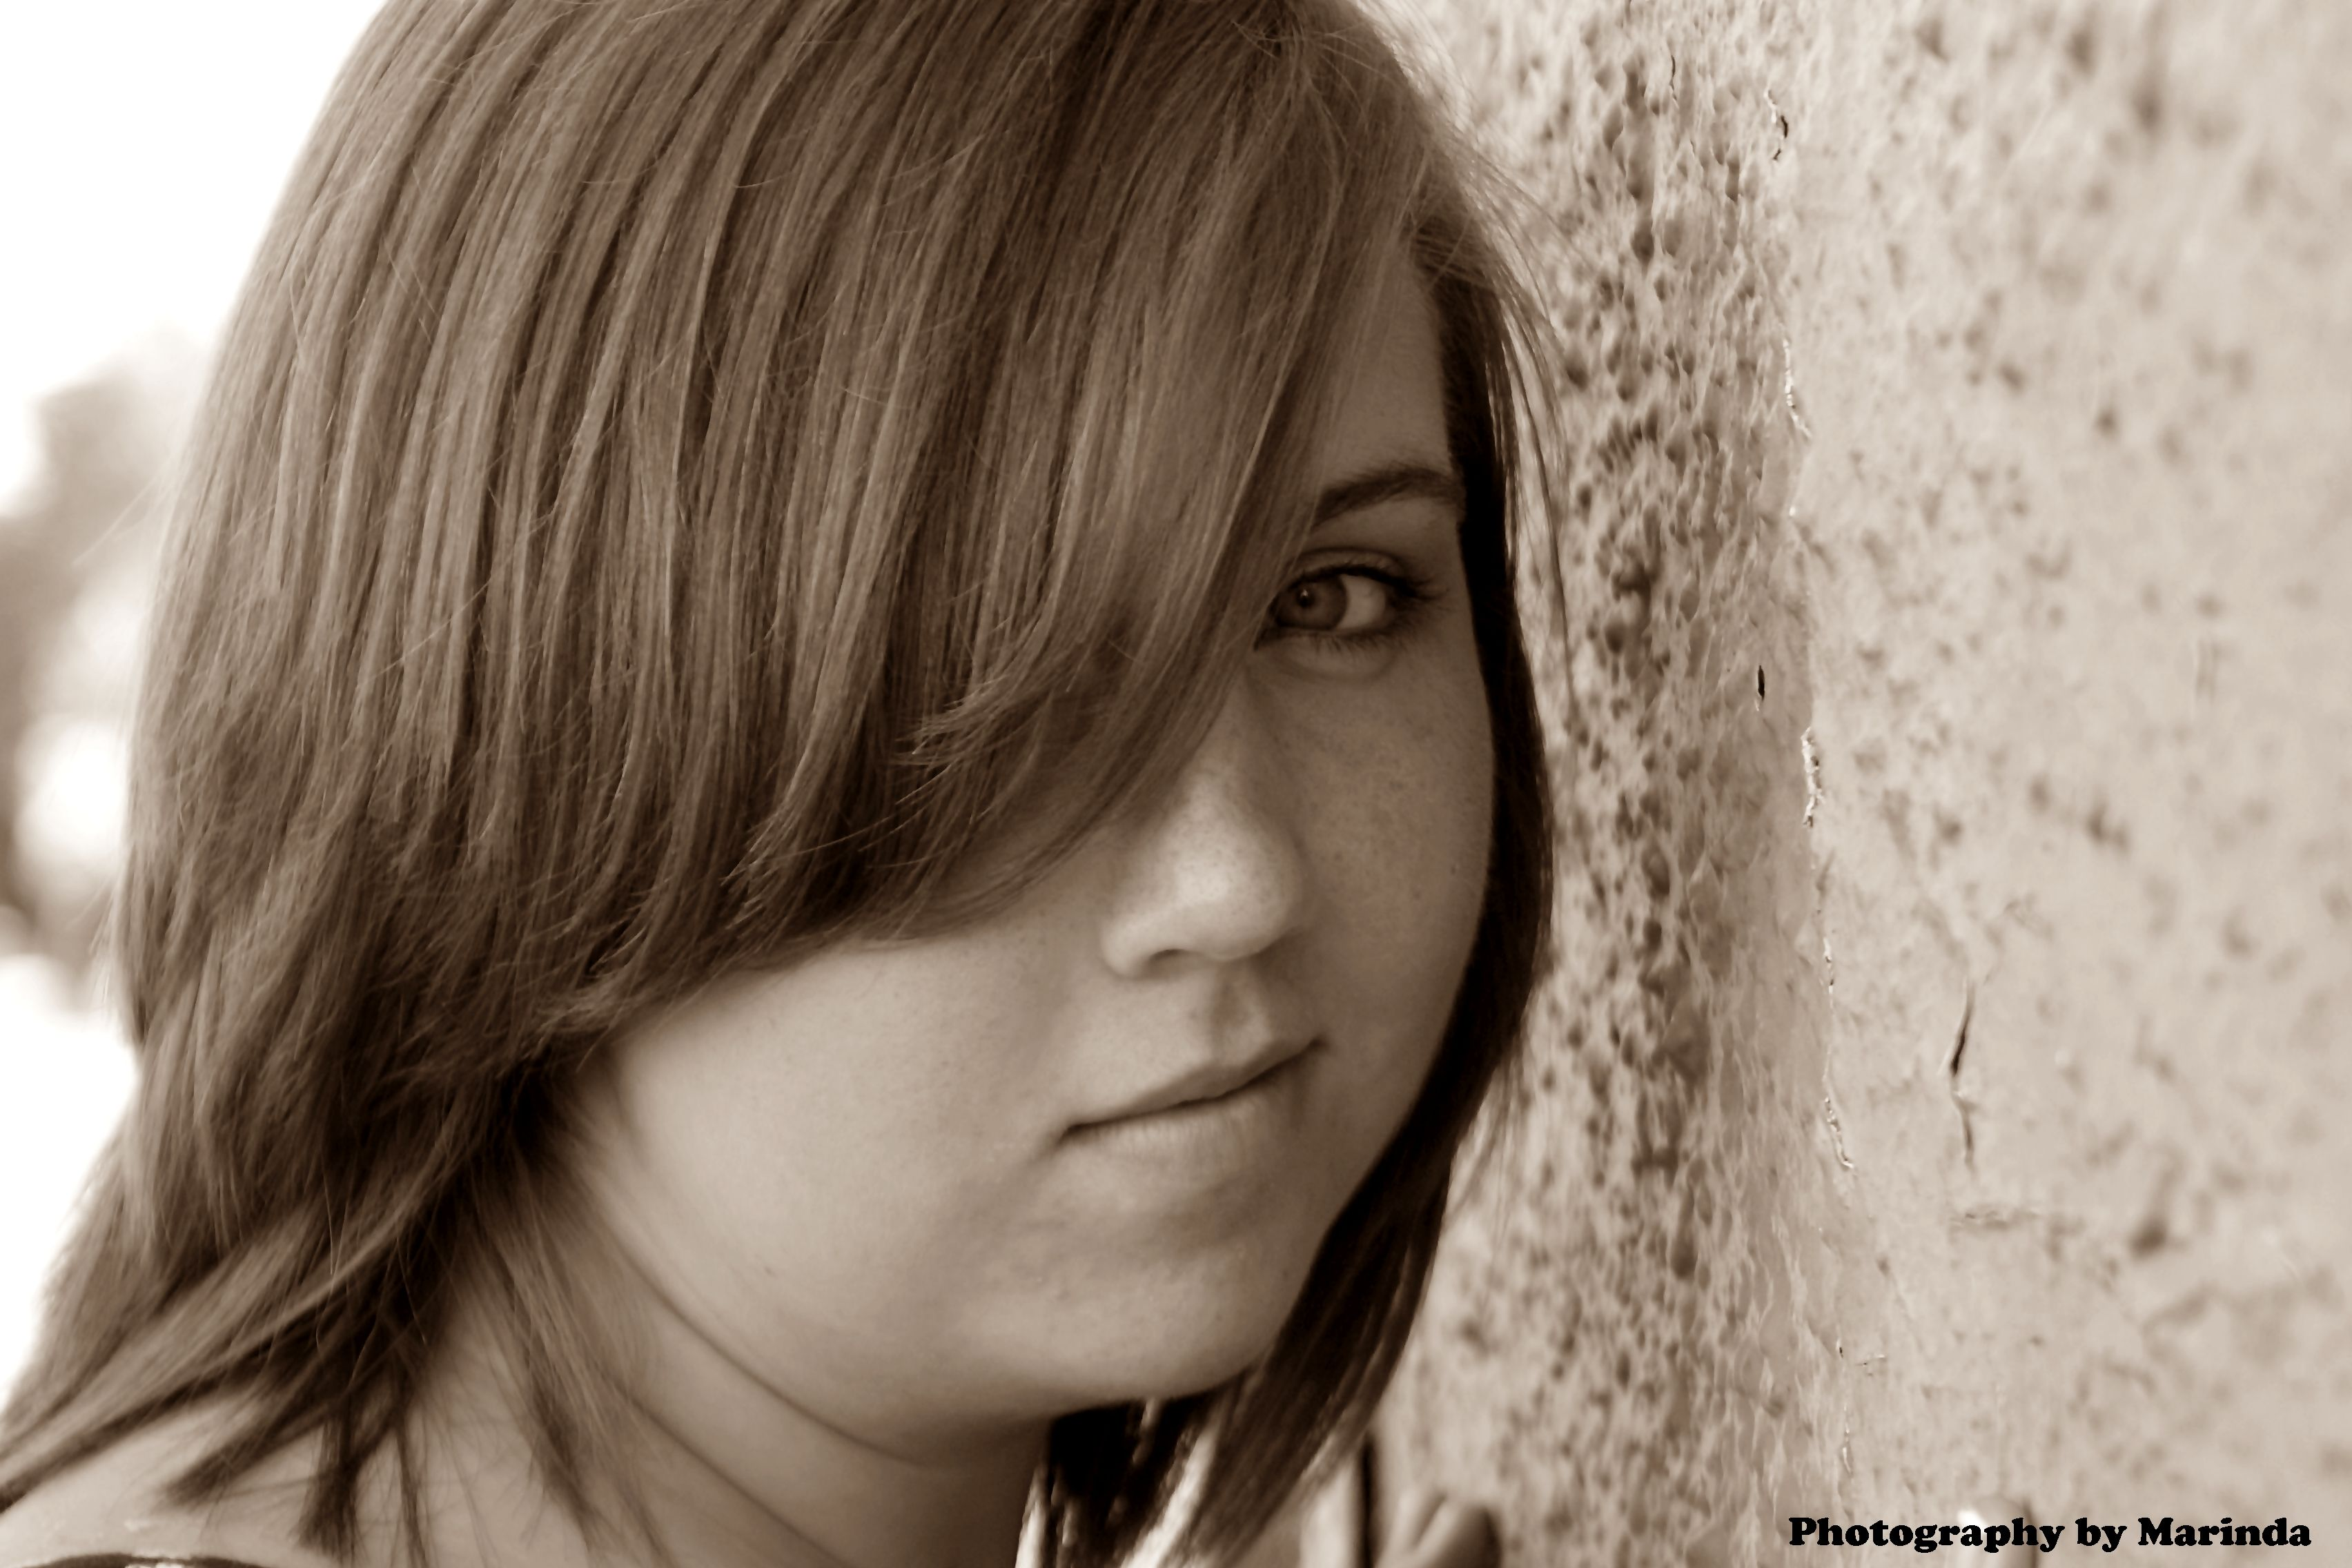 http://www.facebook.com/?ref=tn_tnmn#!/pages/Photography-by-Marinda/157262977671250